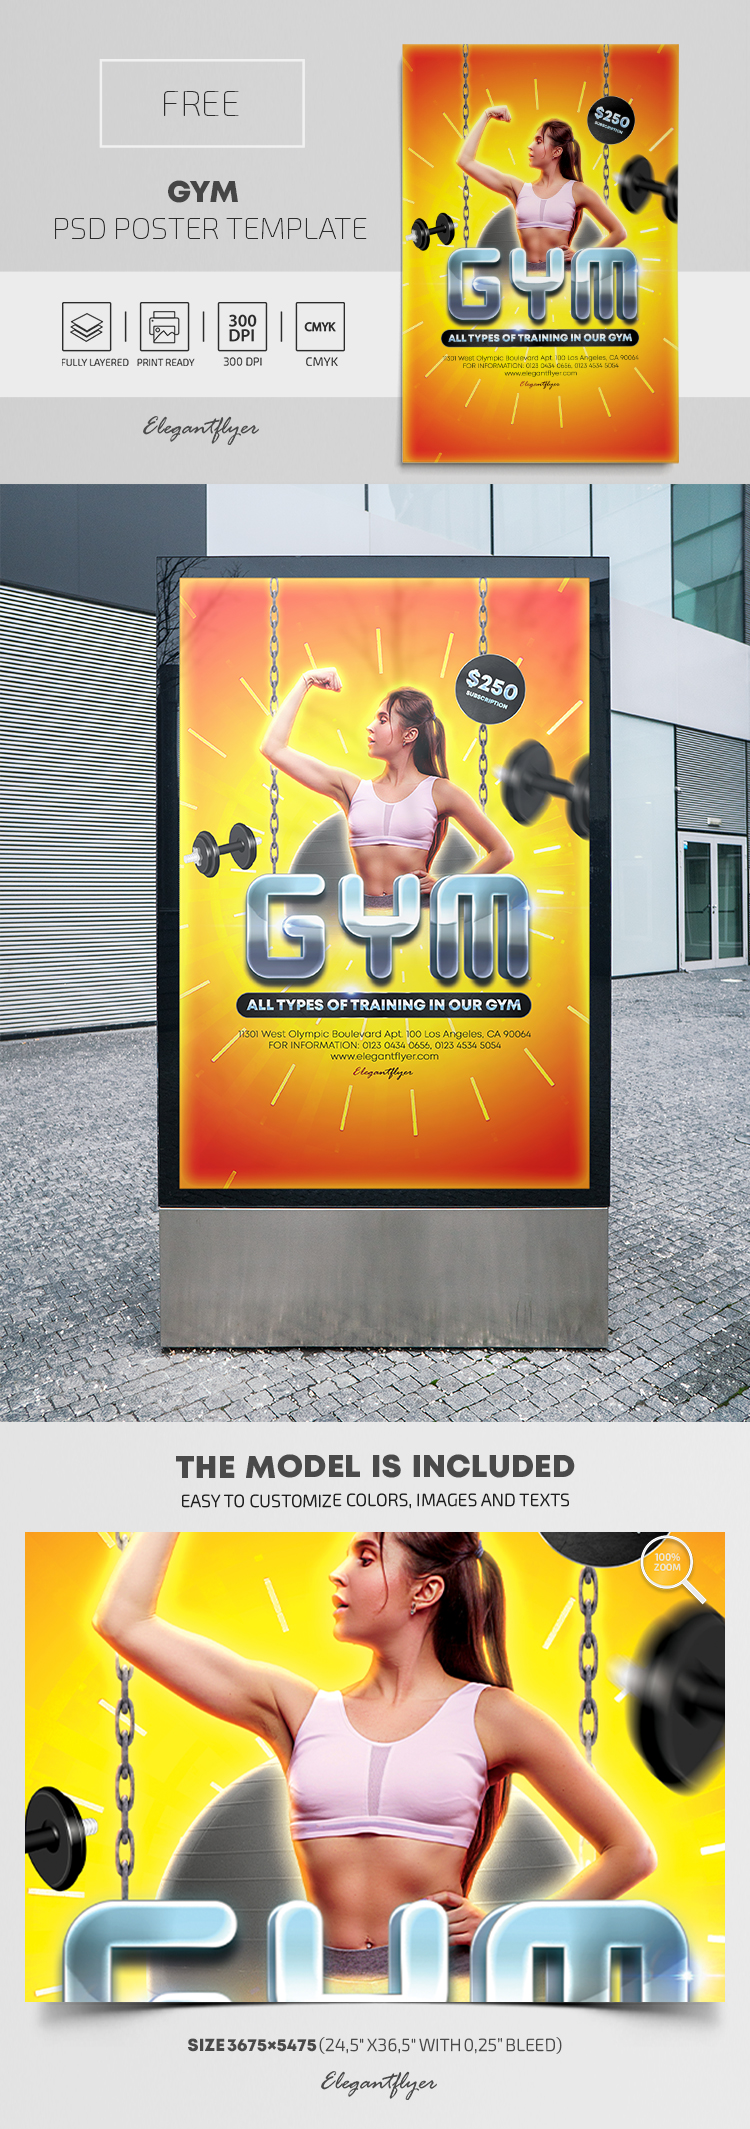 GYM – Free PSD Poster Template